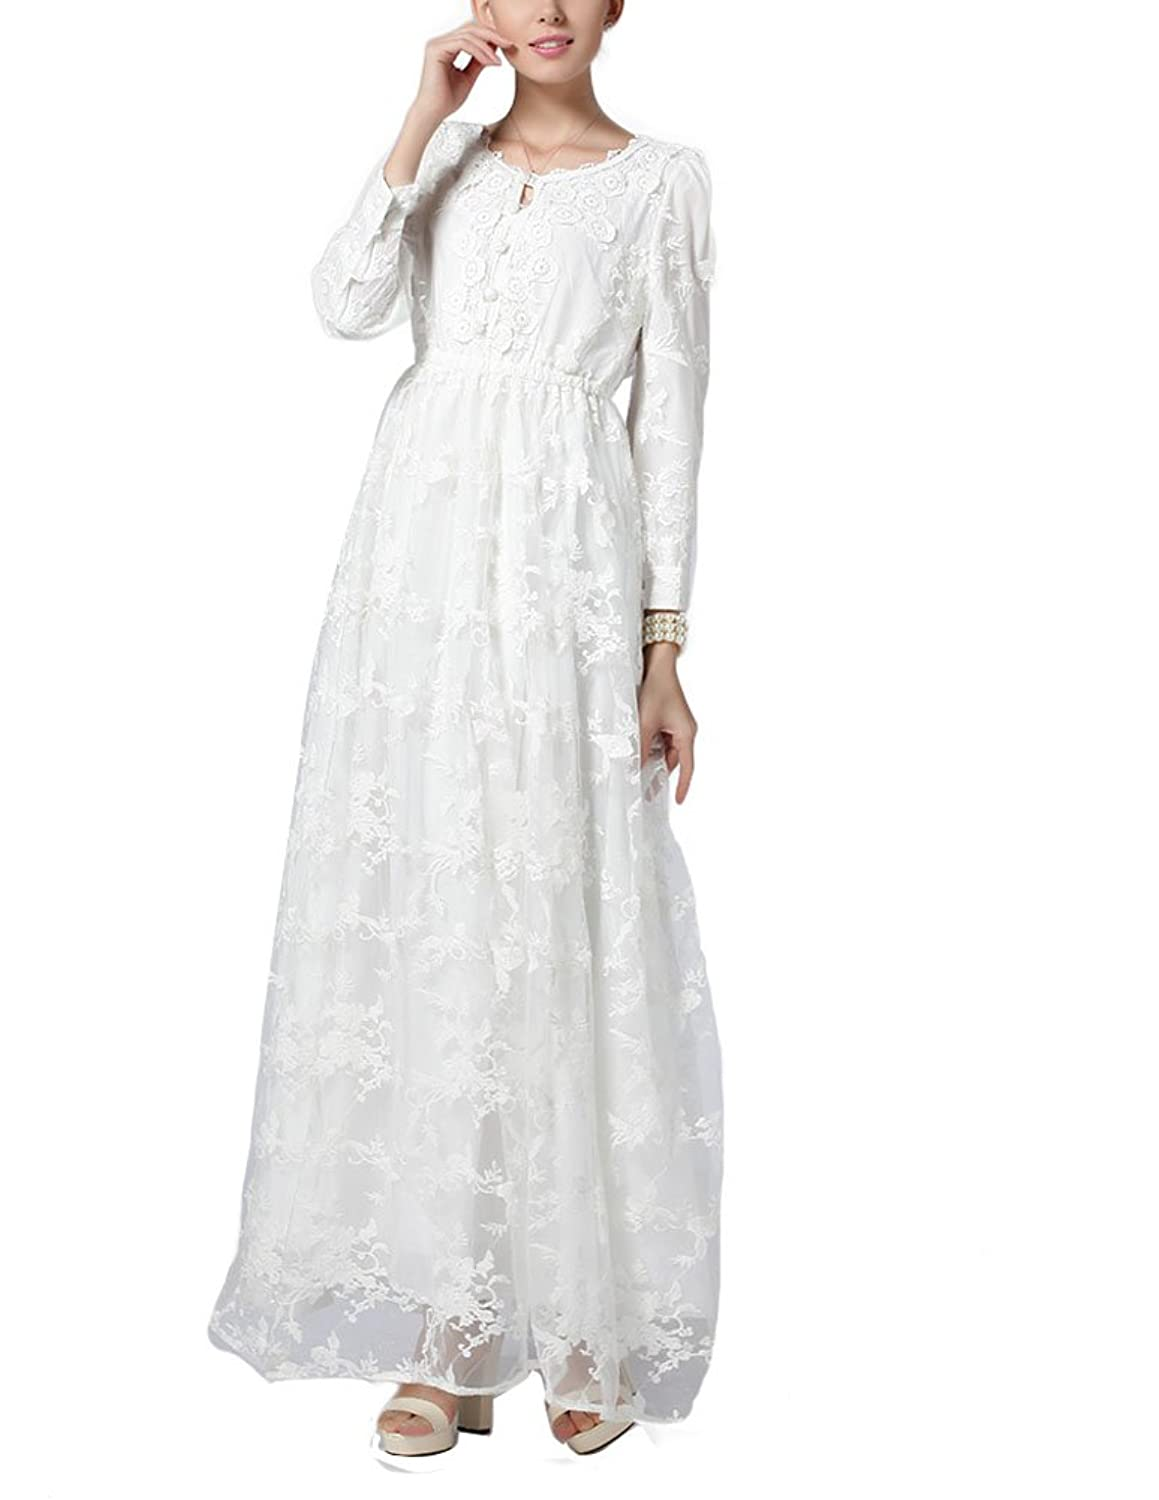 Edwardian Style Dresses Three Layers Crochet Embroidery Craft Lace Wedding Dress LYQ0156 $49.99 AT vintagedancer.com